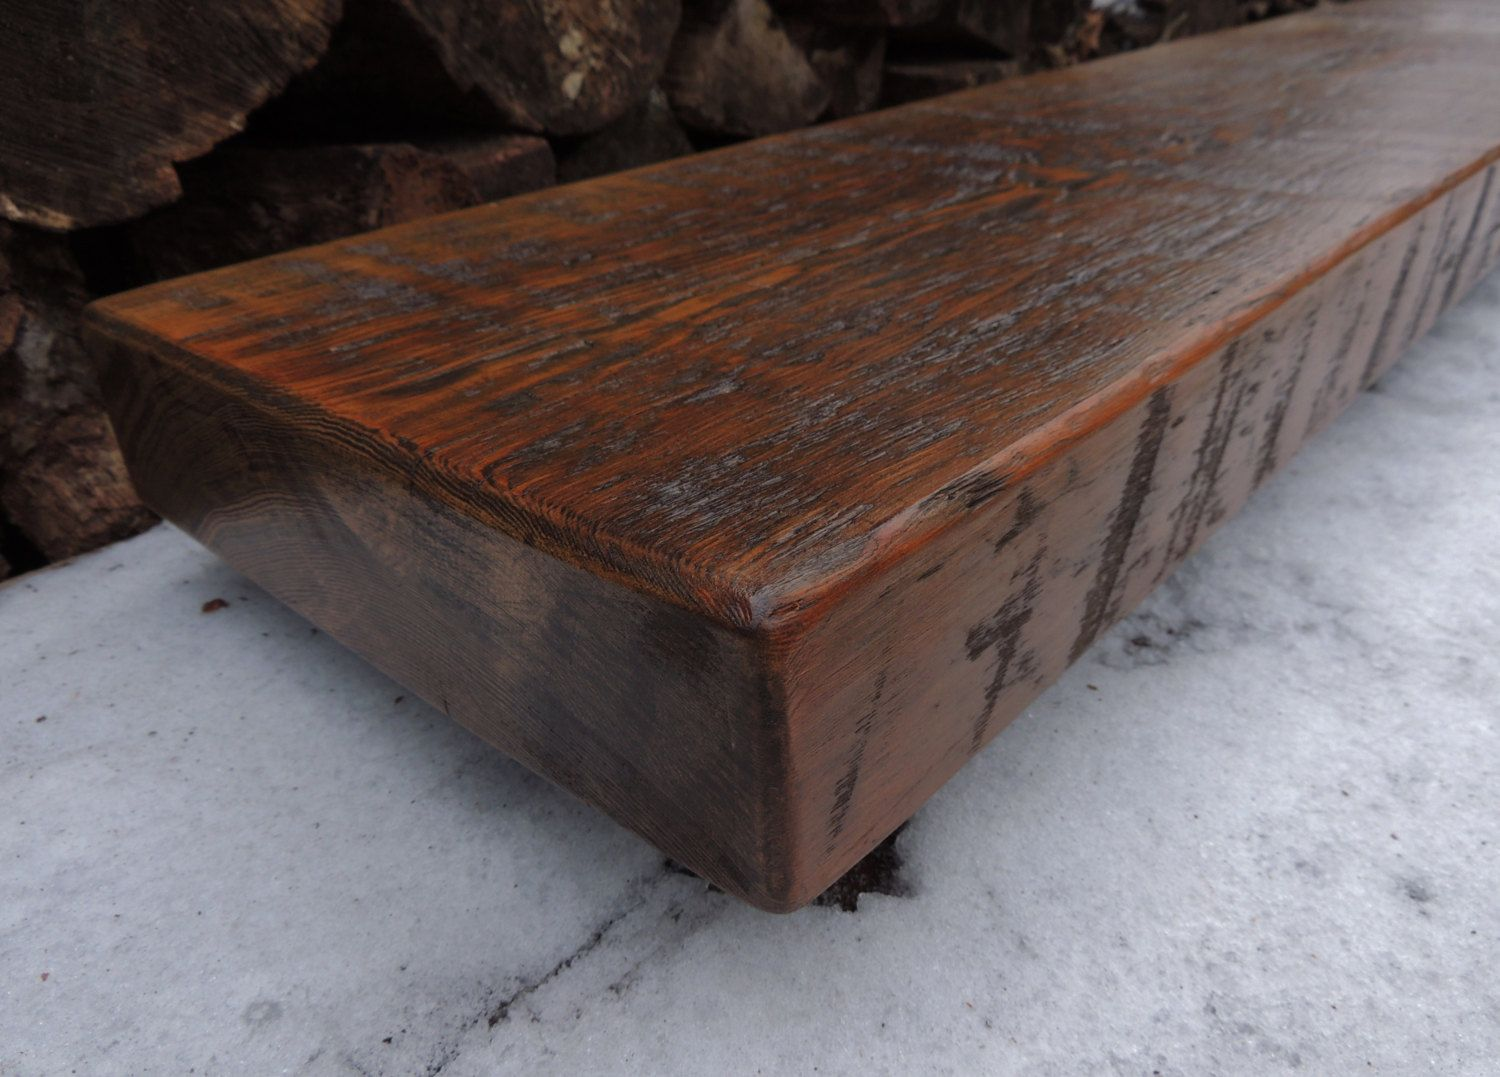 Reclaimed Wood Mantel  Rustic Douglas Fir Fireplace Mantel Or Mantle Shelf  (62 3 Gallery